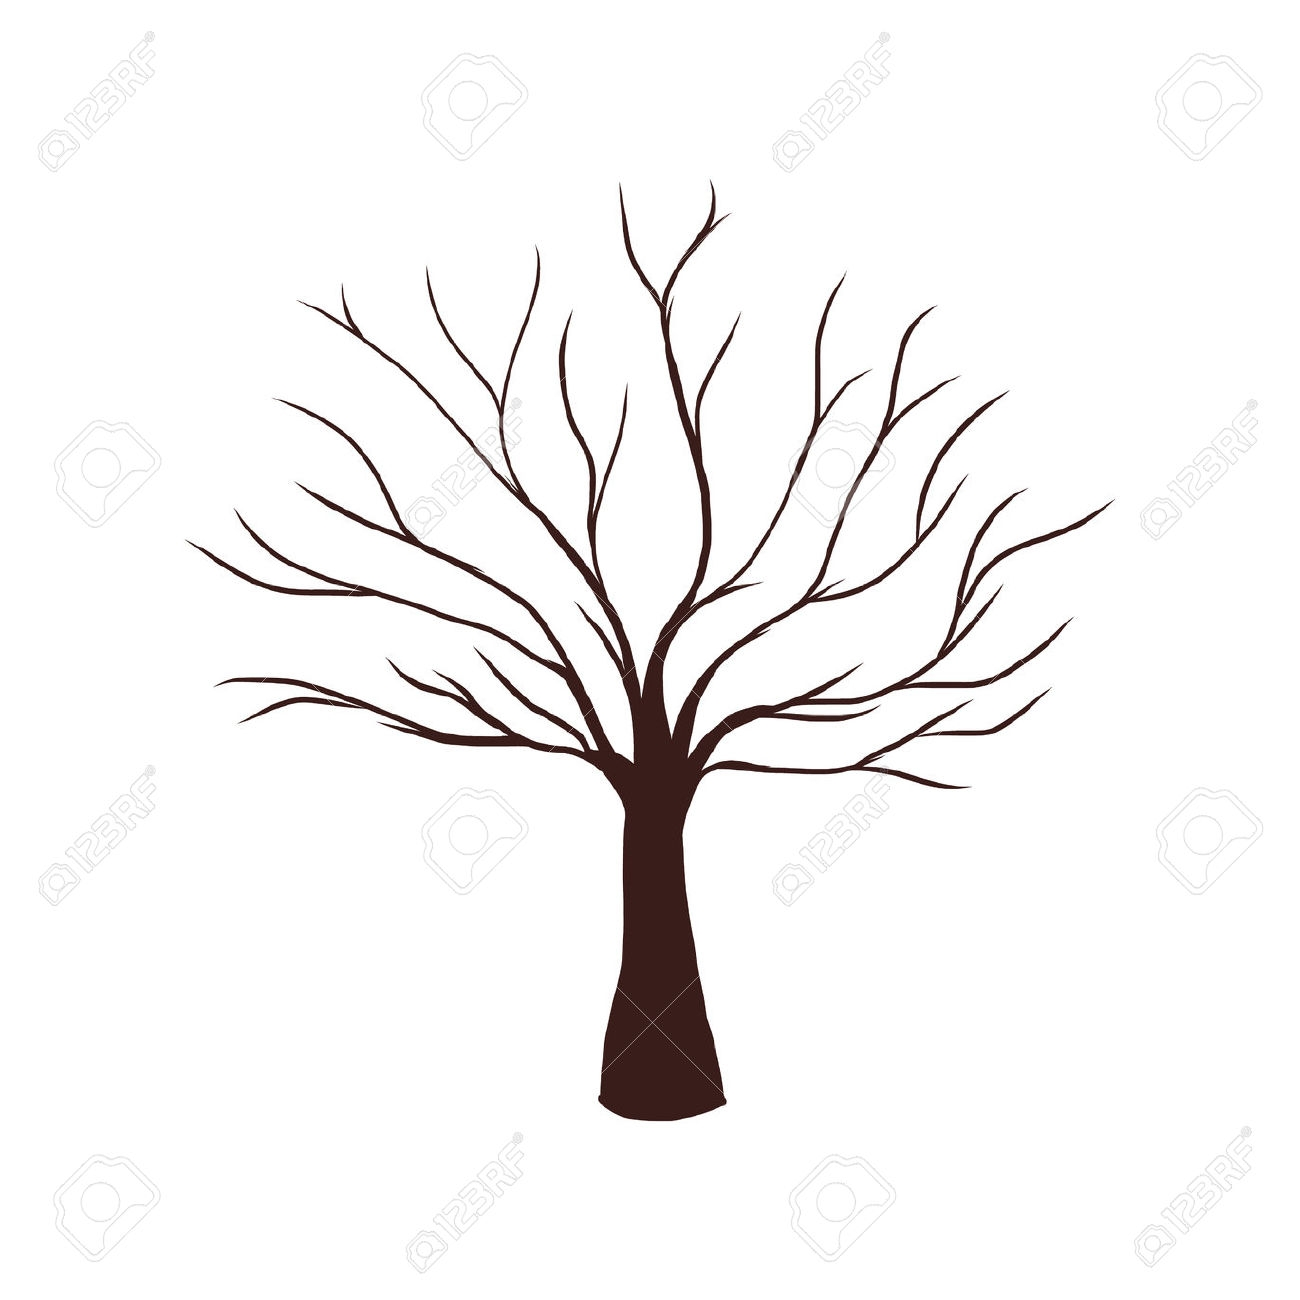 Trees without leaves clipart - Clipground